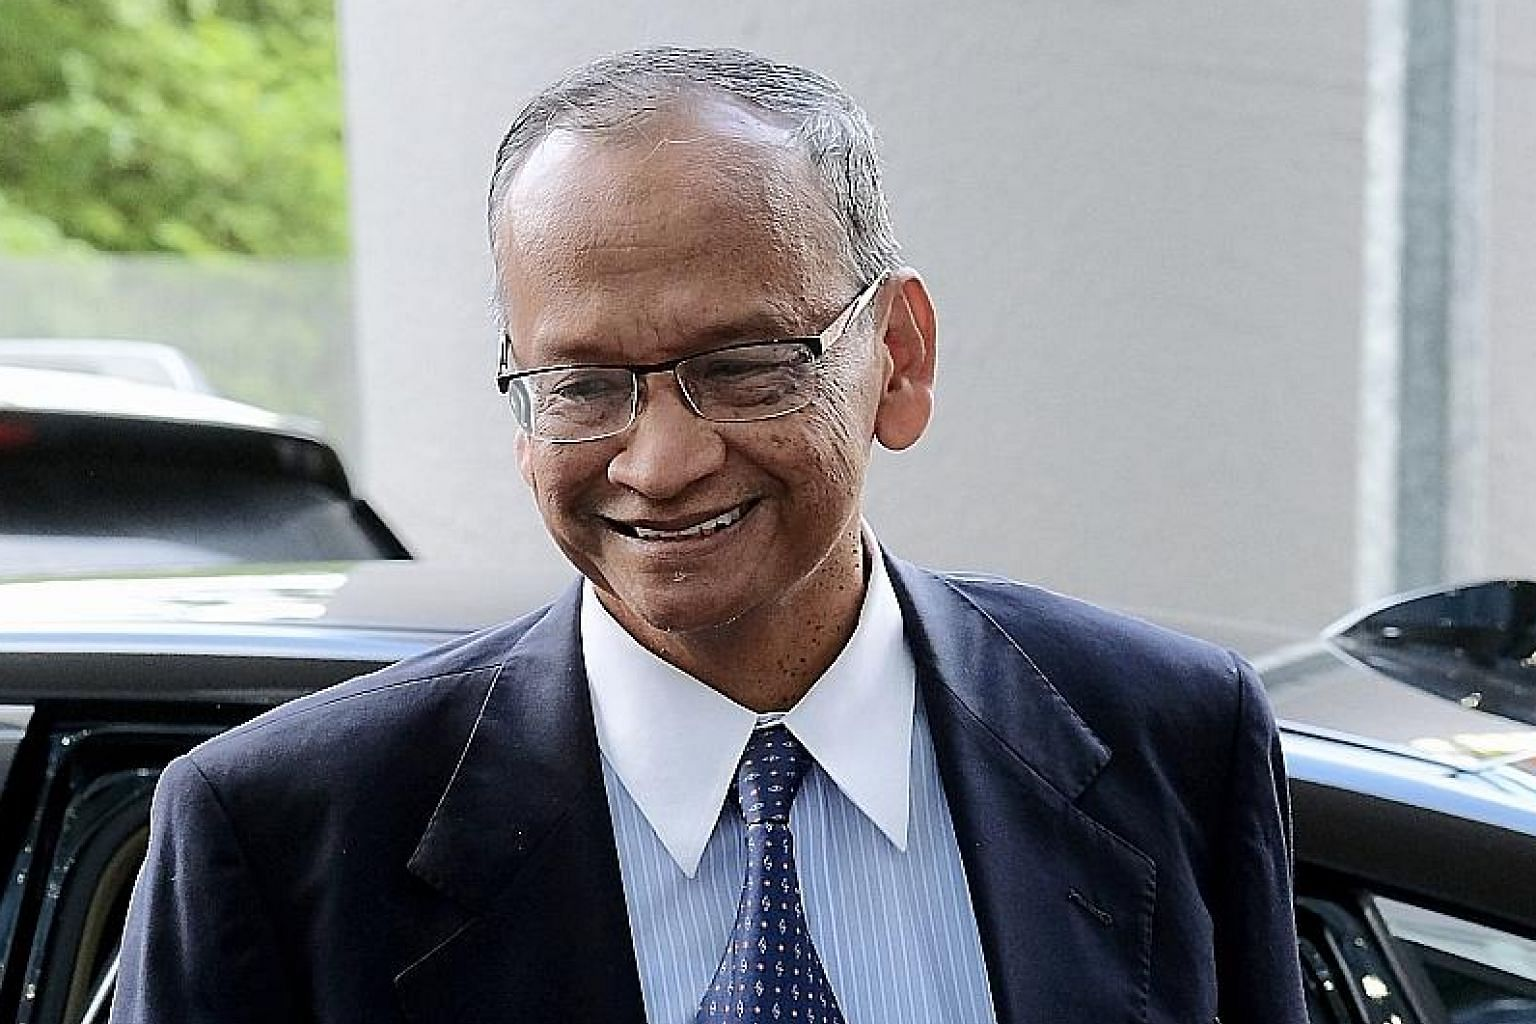 Malaysia's former auditor-general Ambrin Buang said he was pressured by top officials into amending an audit report on 1MDB. PHOTO: BERNAMA